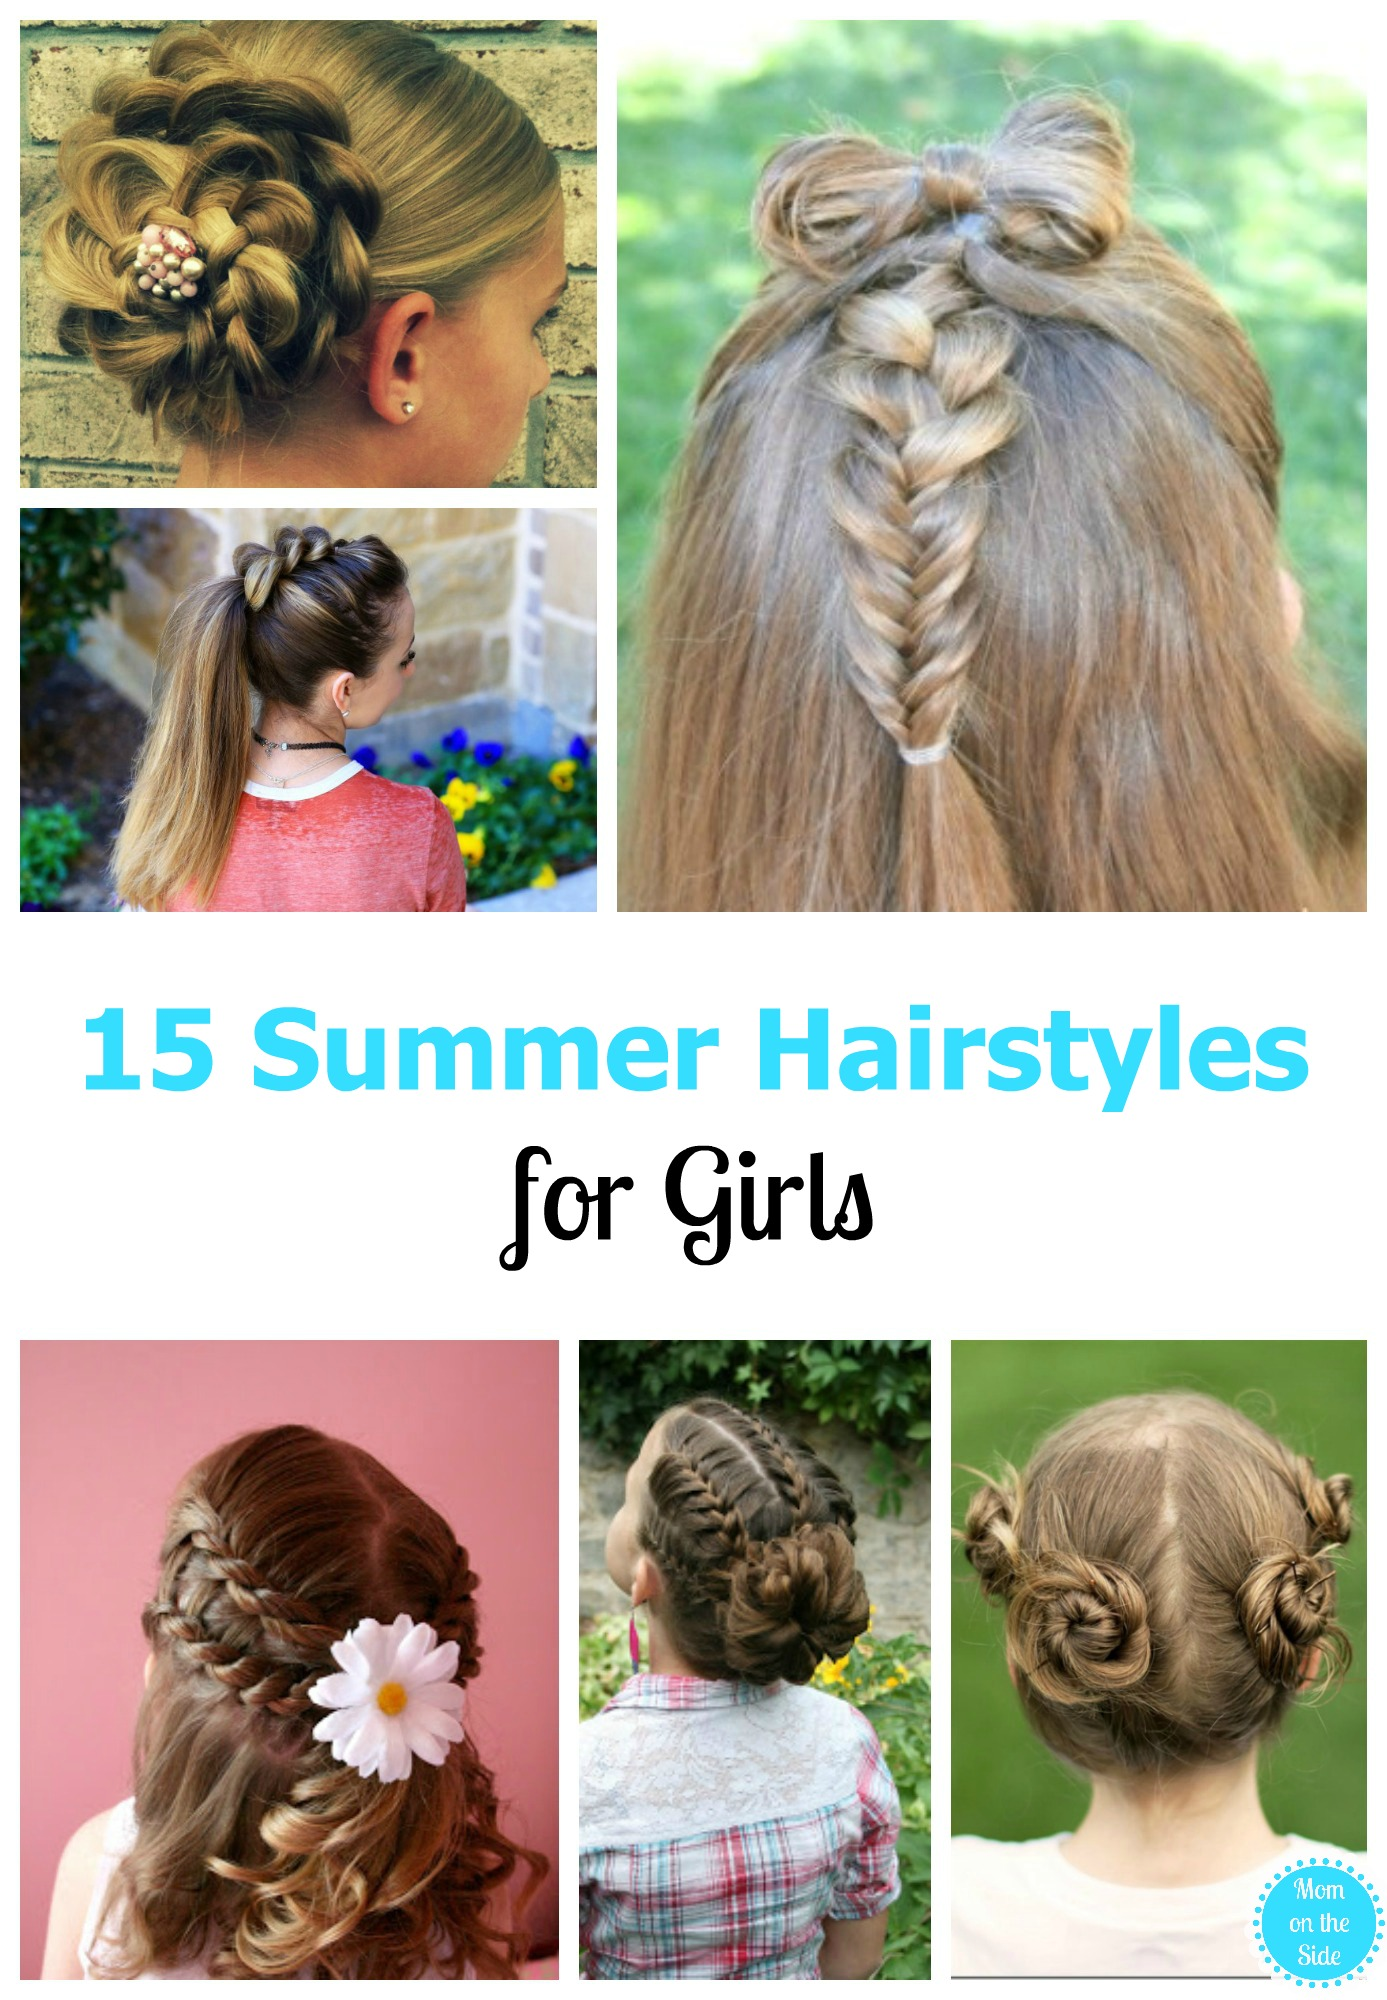 I'm hoping we can pull off some of these beautiful summer hairstyles for girls! Which girls hairstyle ideas are you going to try?